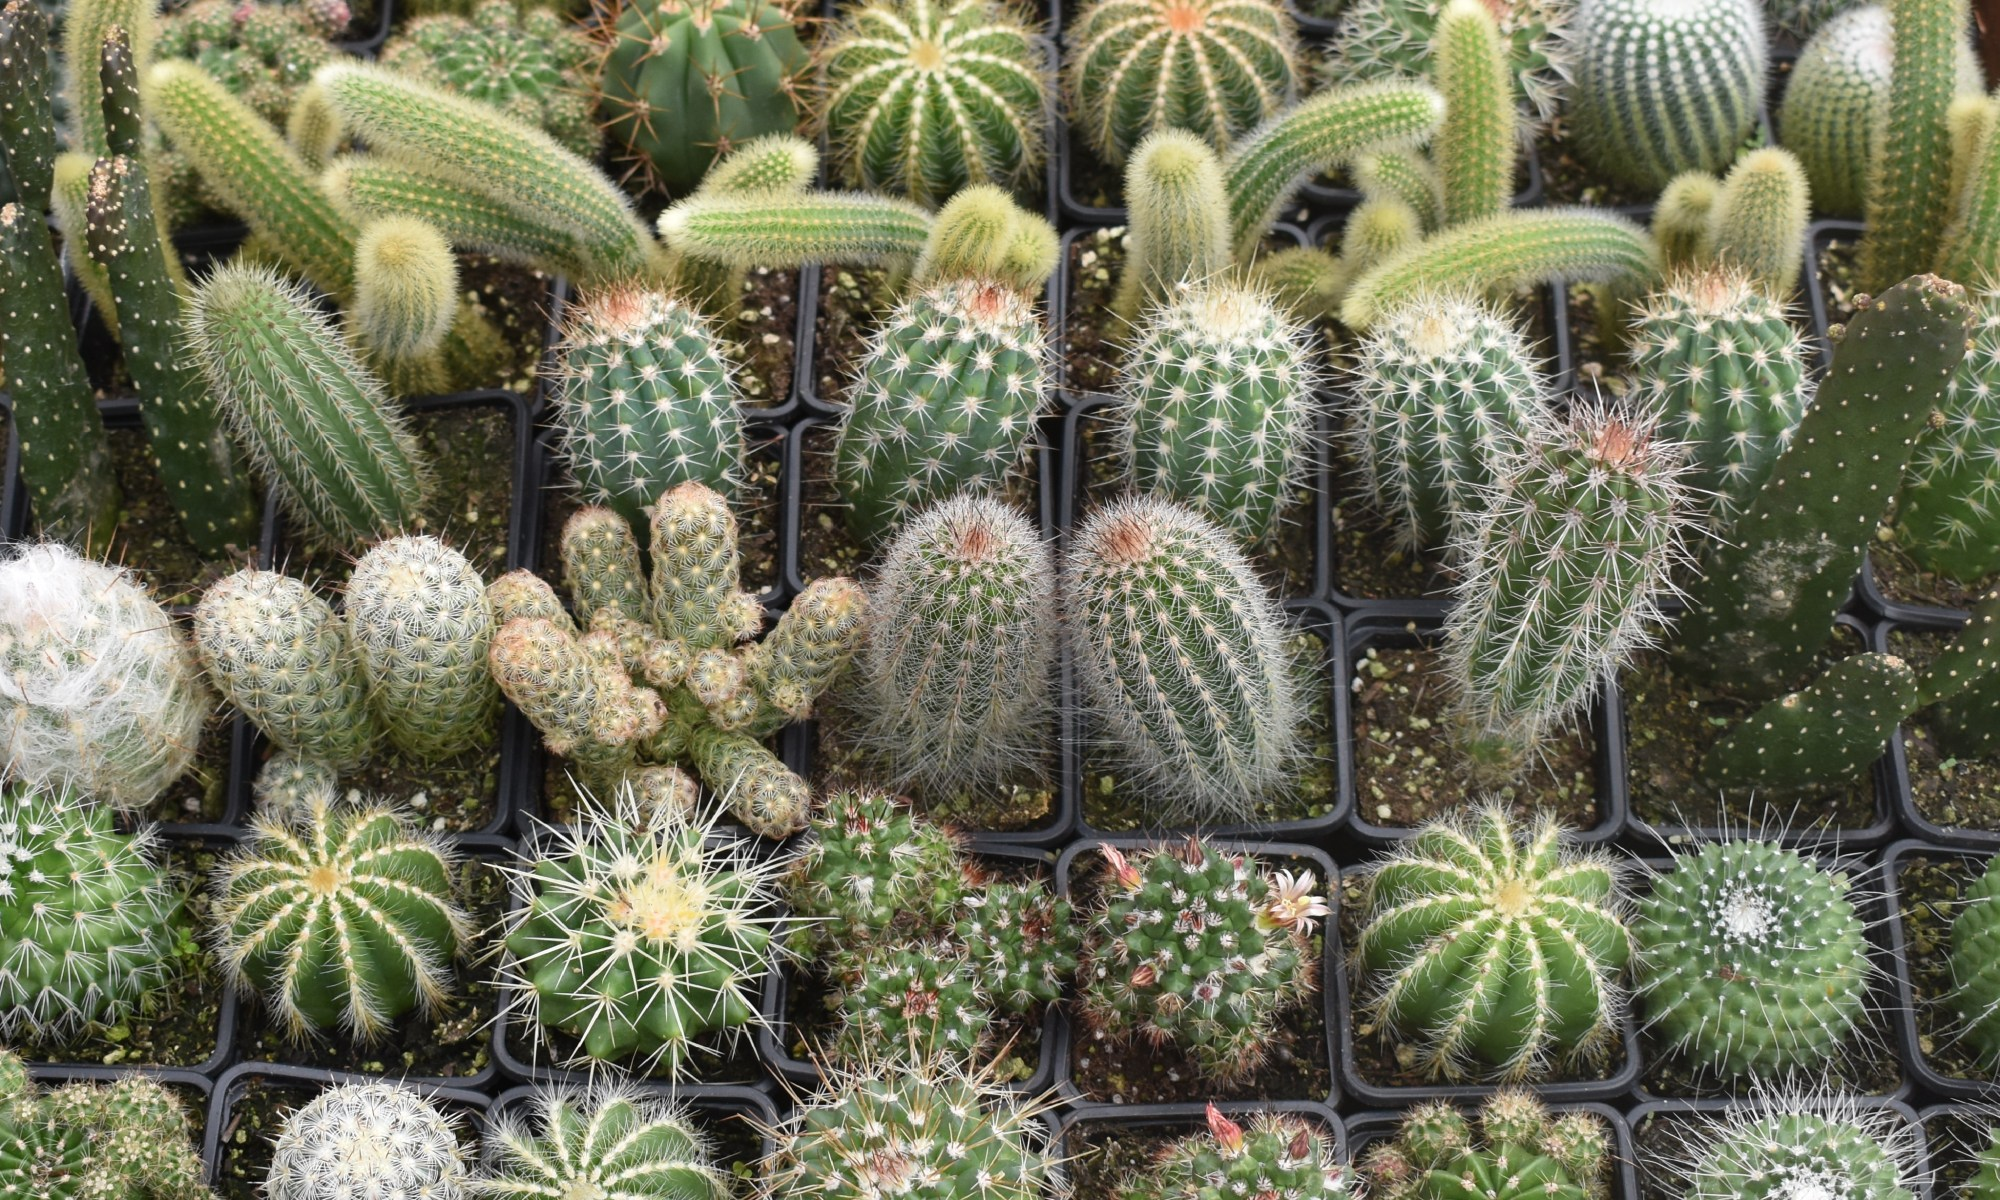 Cactus for sale at Crazy Criters